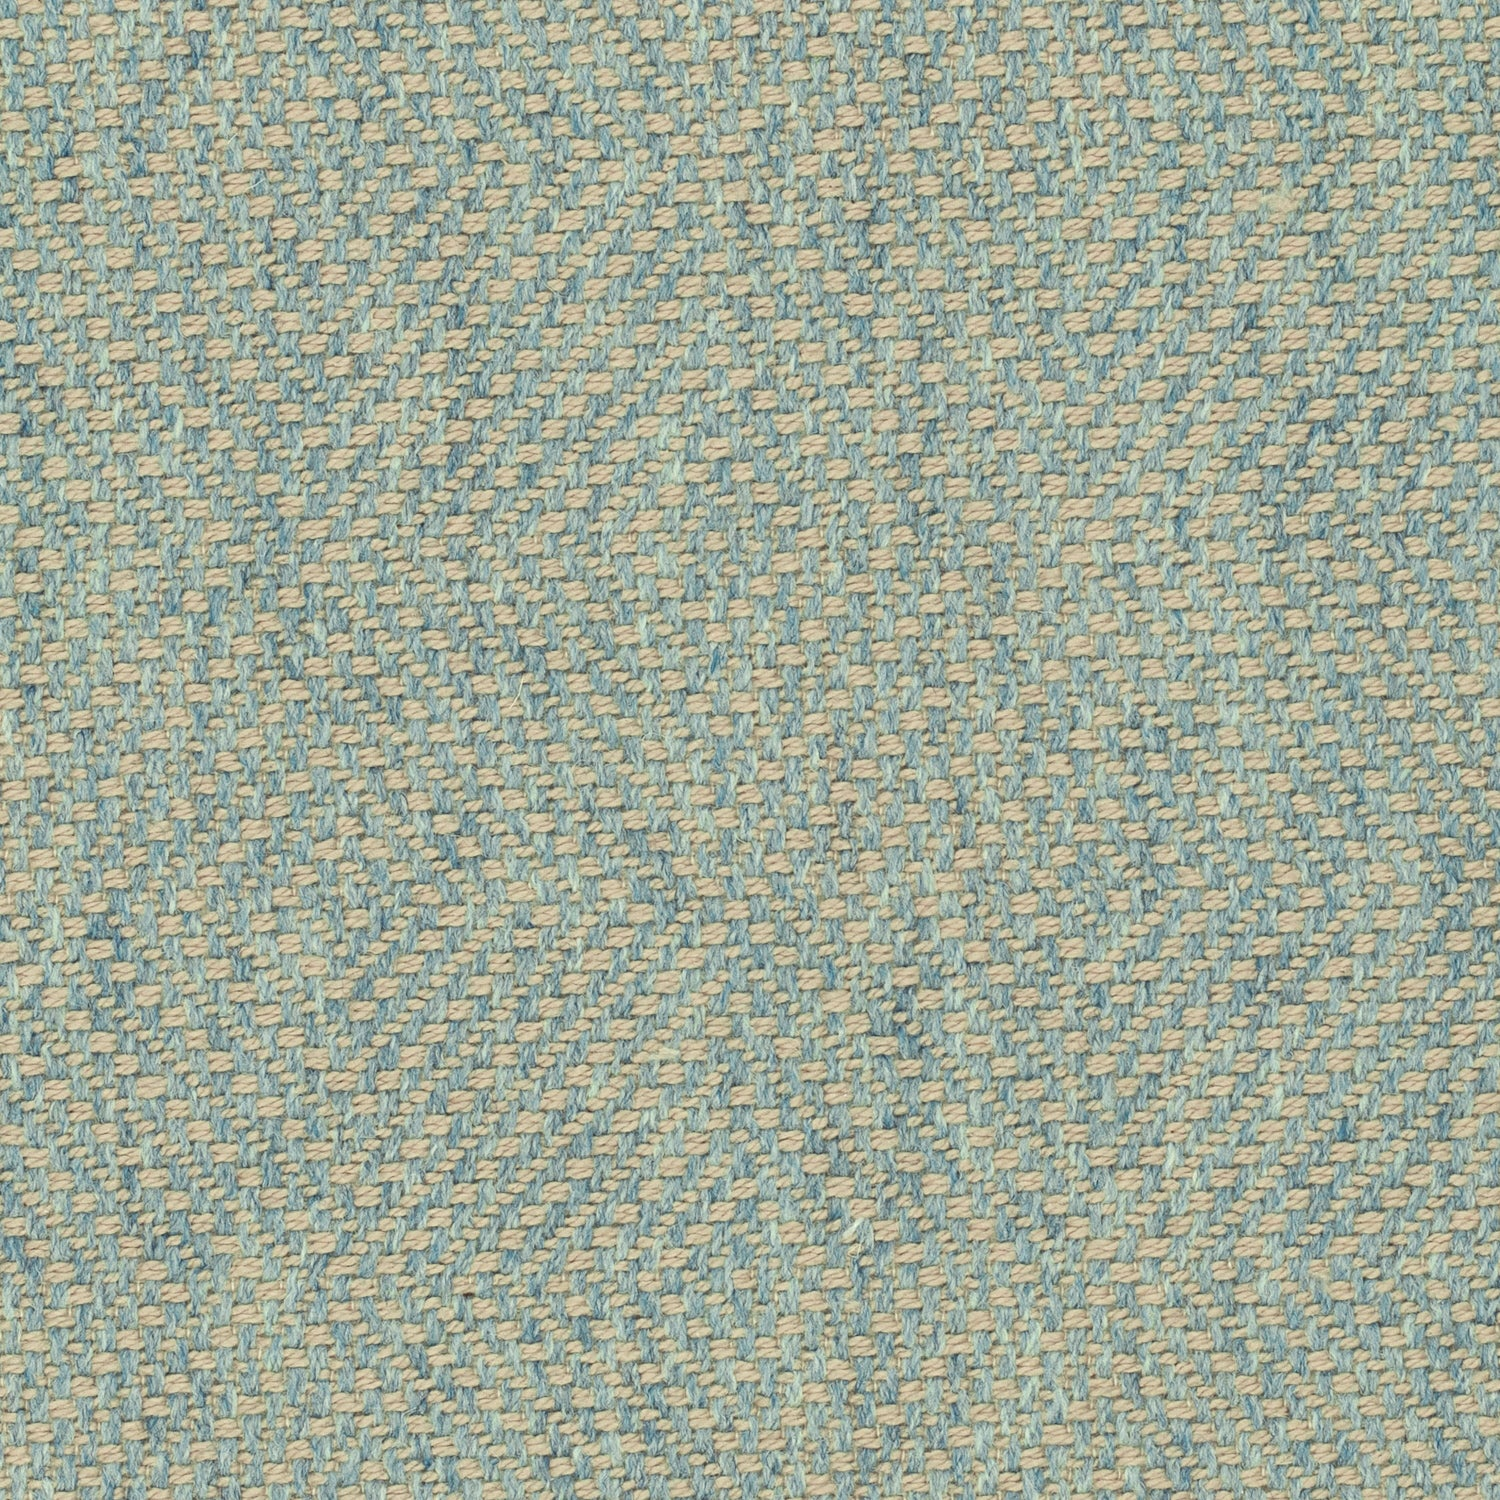 Sky blue fabric for curtains and upholstery with a light geometric woven design